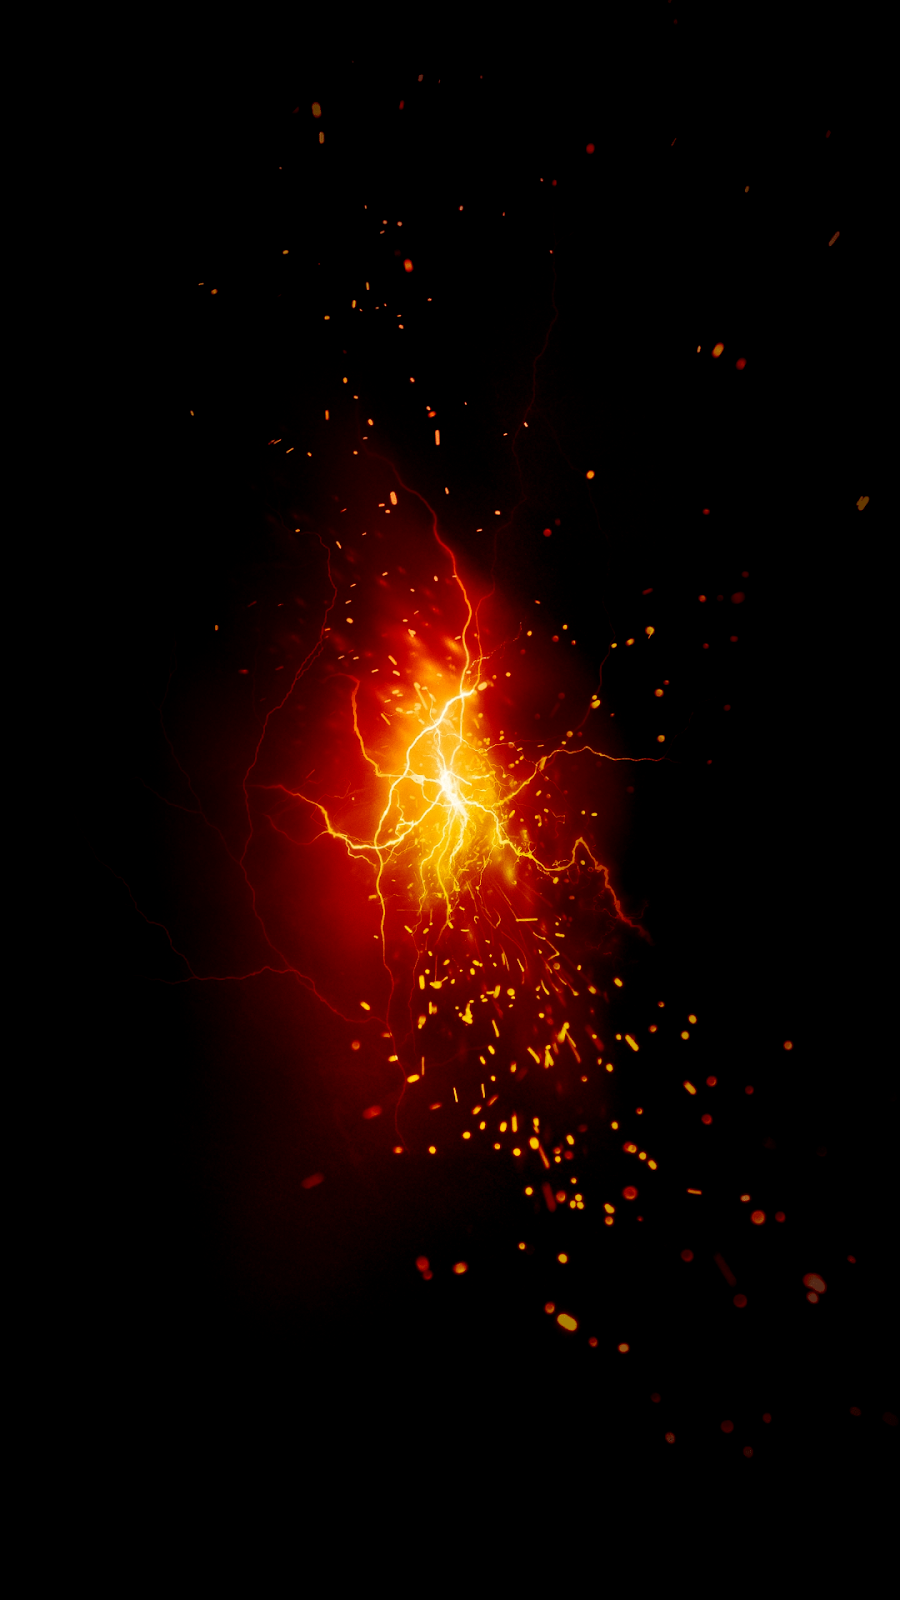 Sparks (for Amoled display)